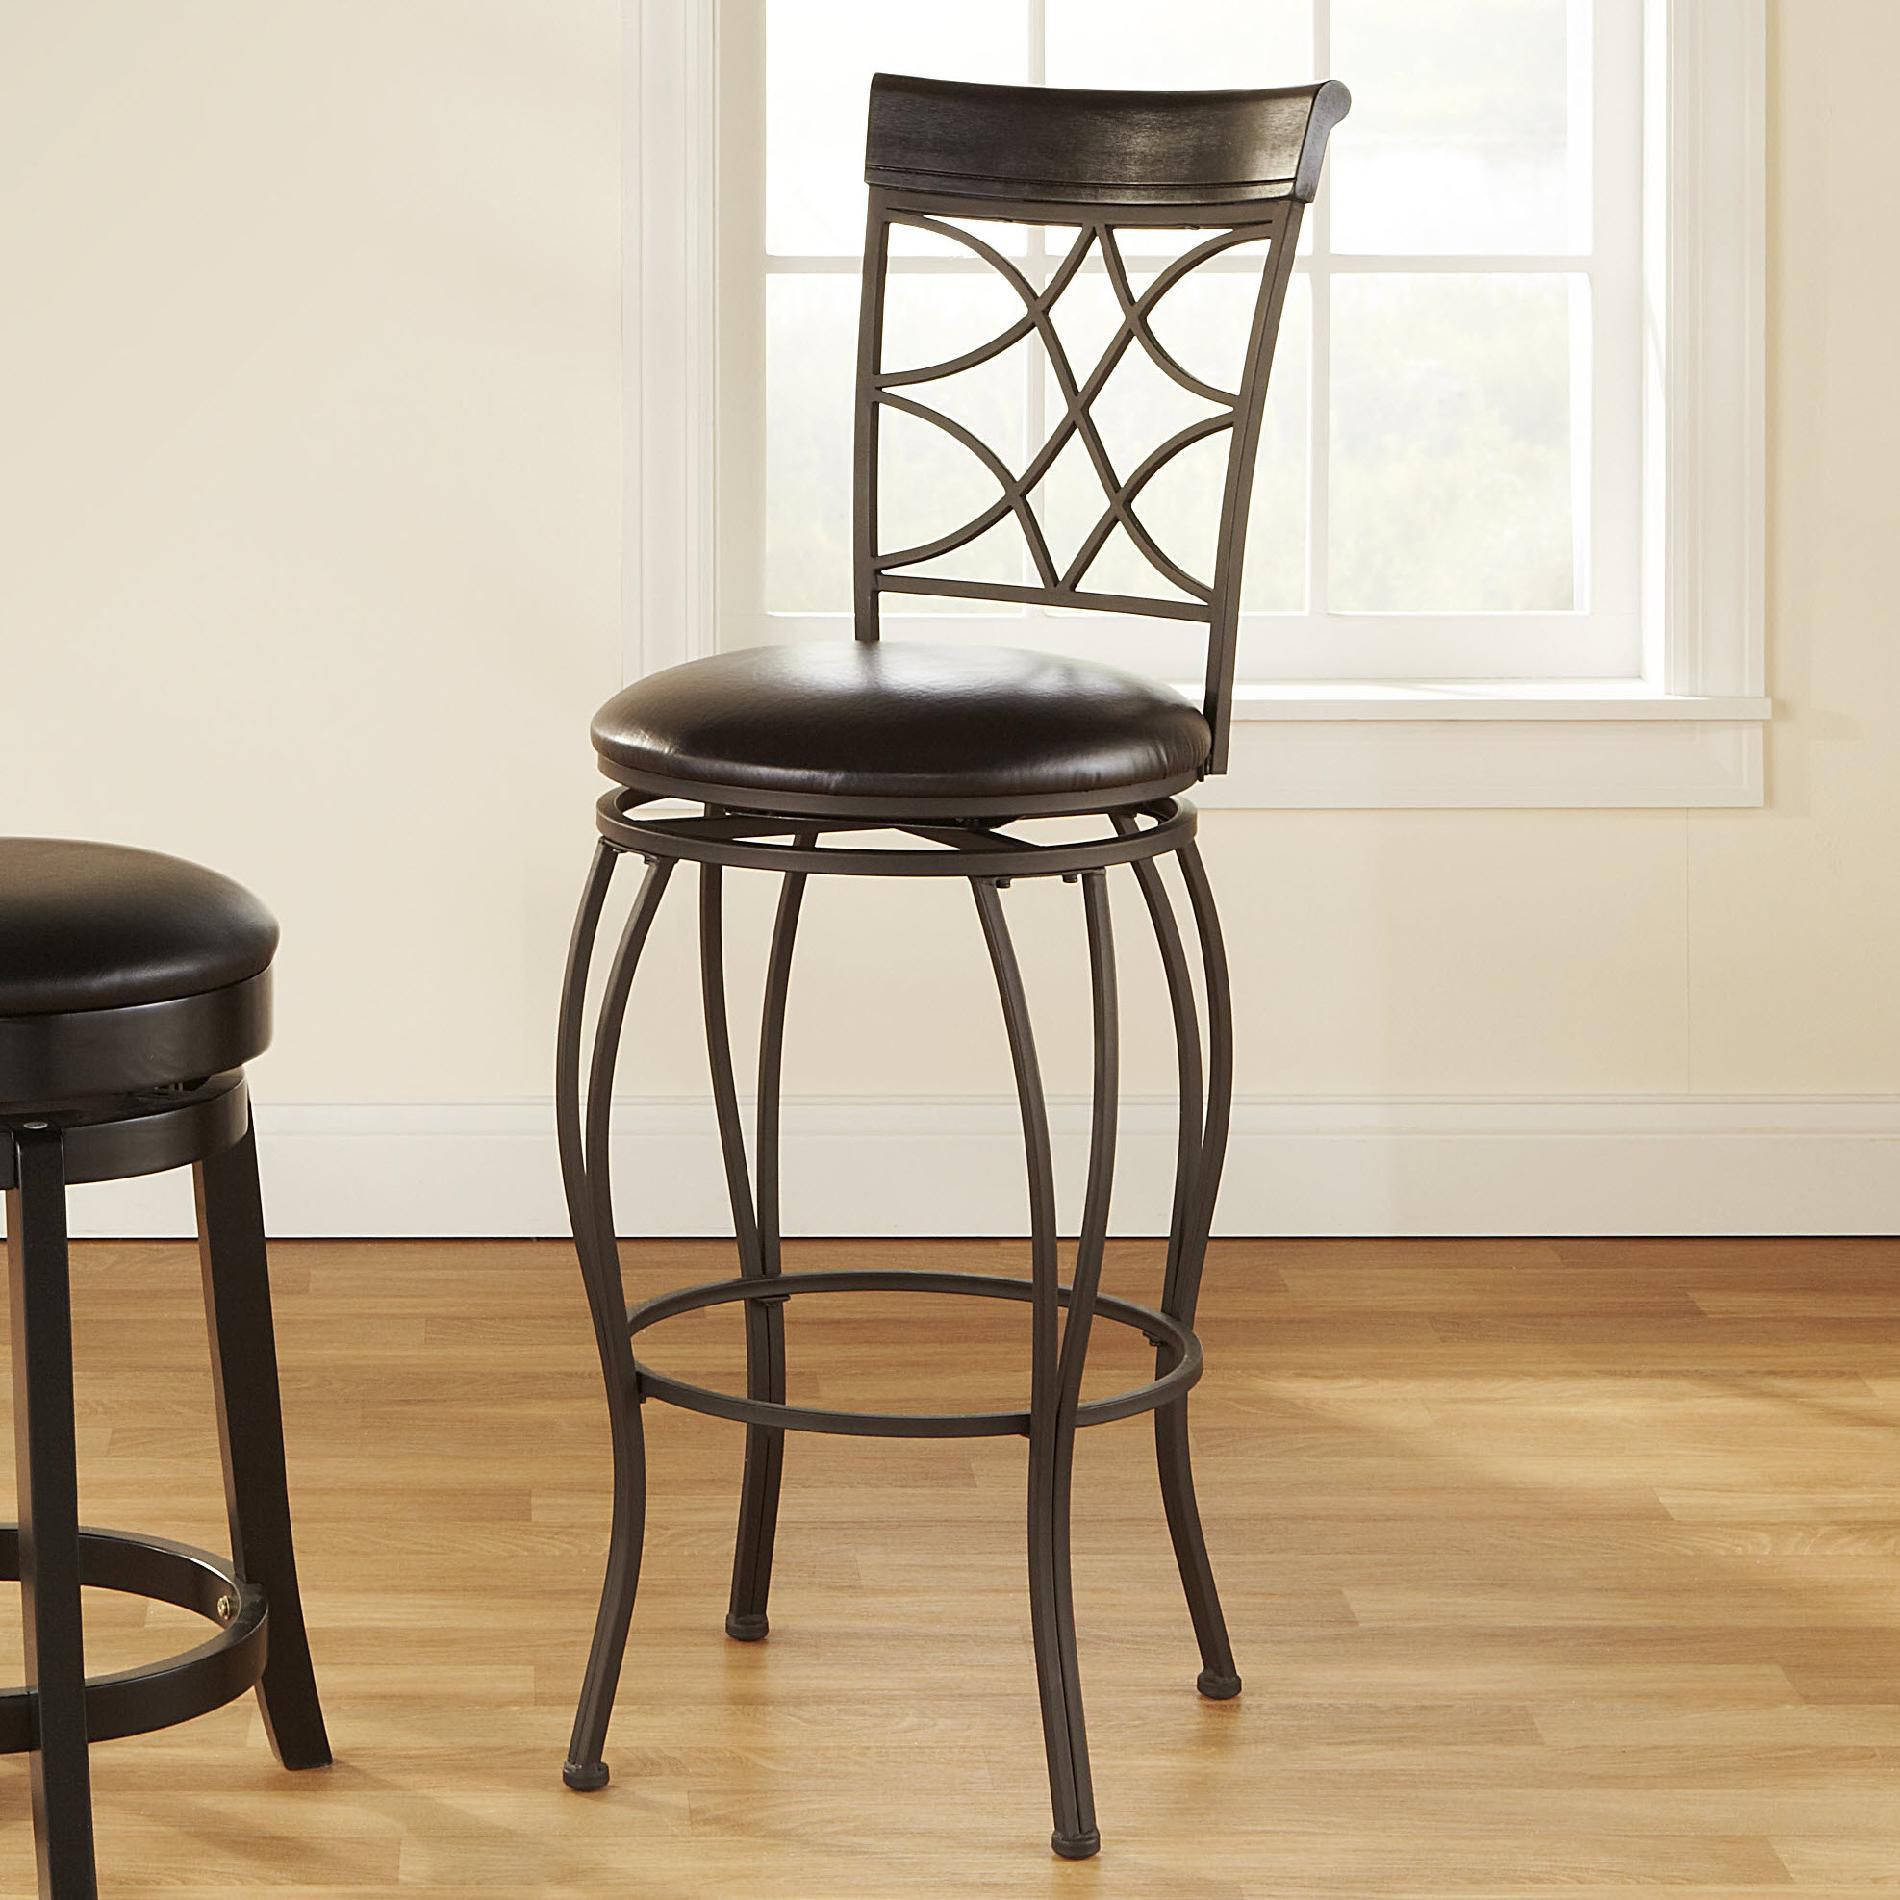 Linon Metal and Wood 29'' Barstool